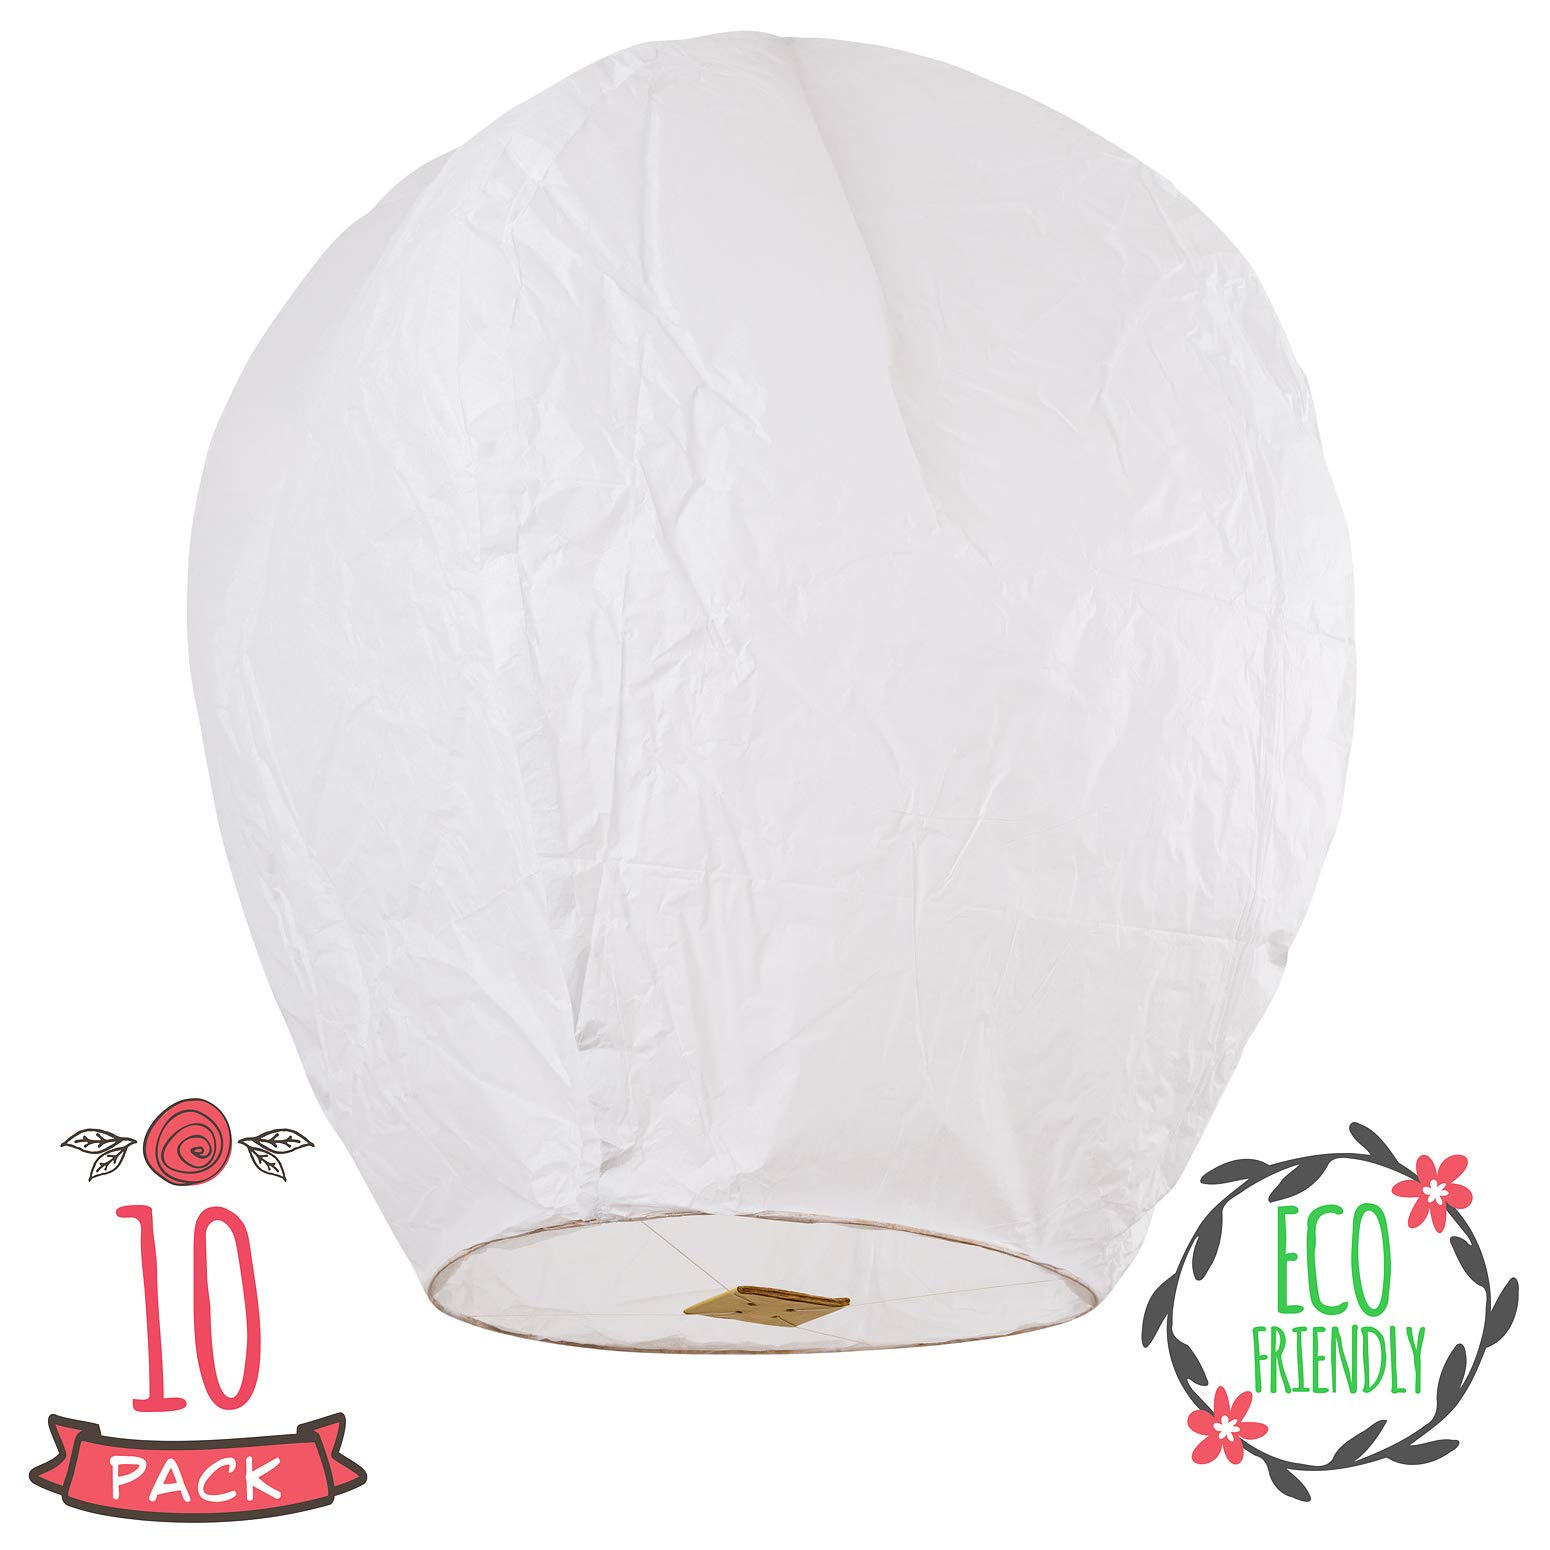 Chinese Lanterns 10-Pack White, Sky High, Fully Assembled, Biodegradable, Sky Lanterns by Coral entertainments for Birthdays, Ceremonies, Weddings. Safe to use and Flame Retardant Paper (White)